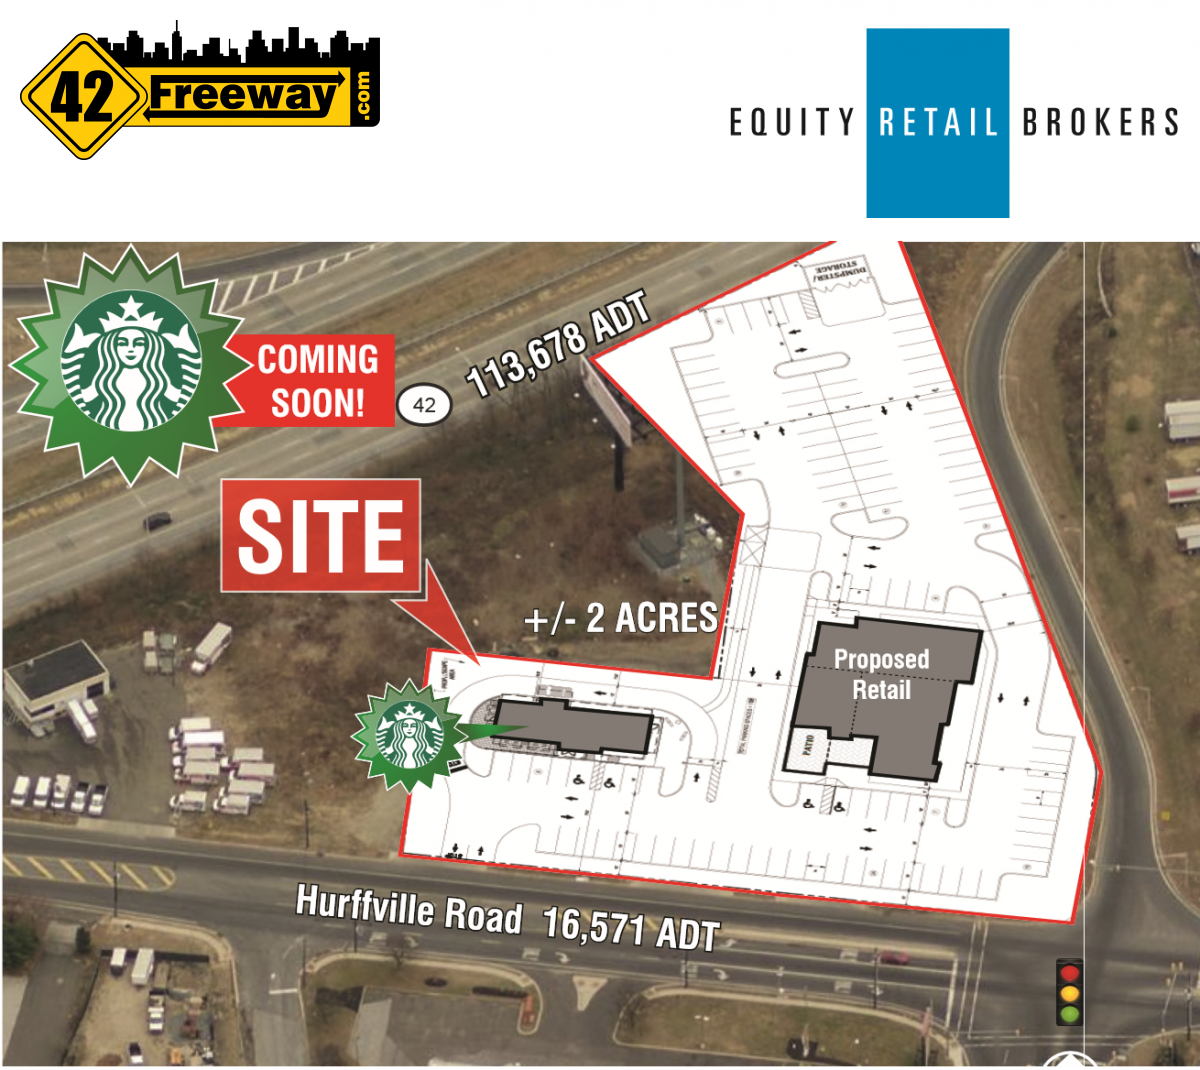 Deptford Starbucks At Freeway Diner Property Confirmed